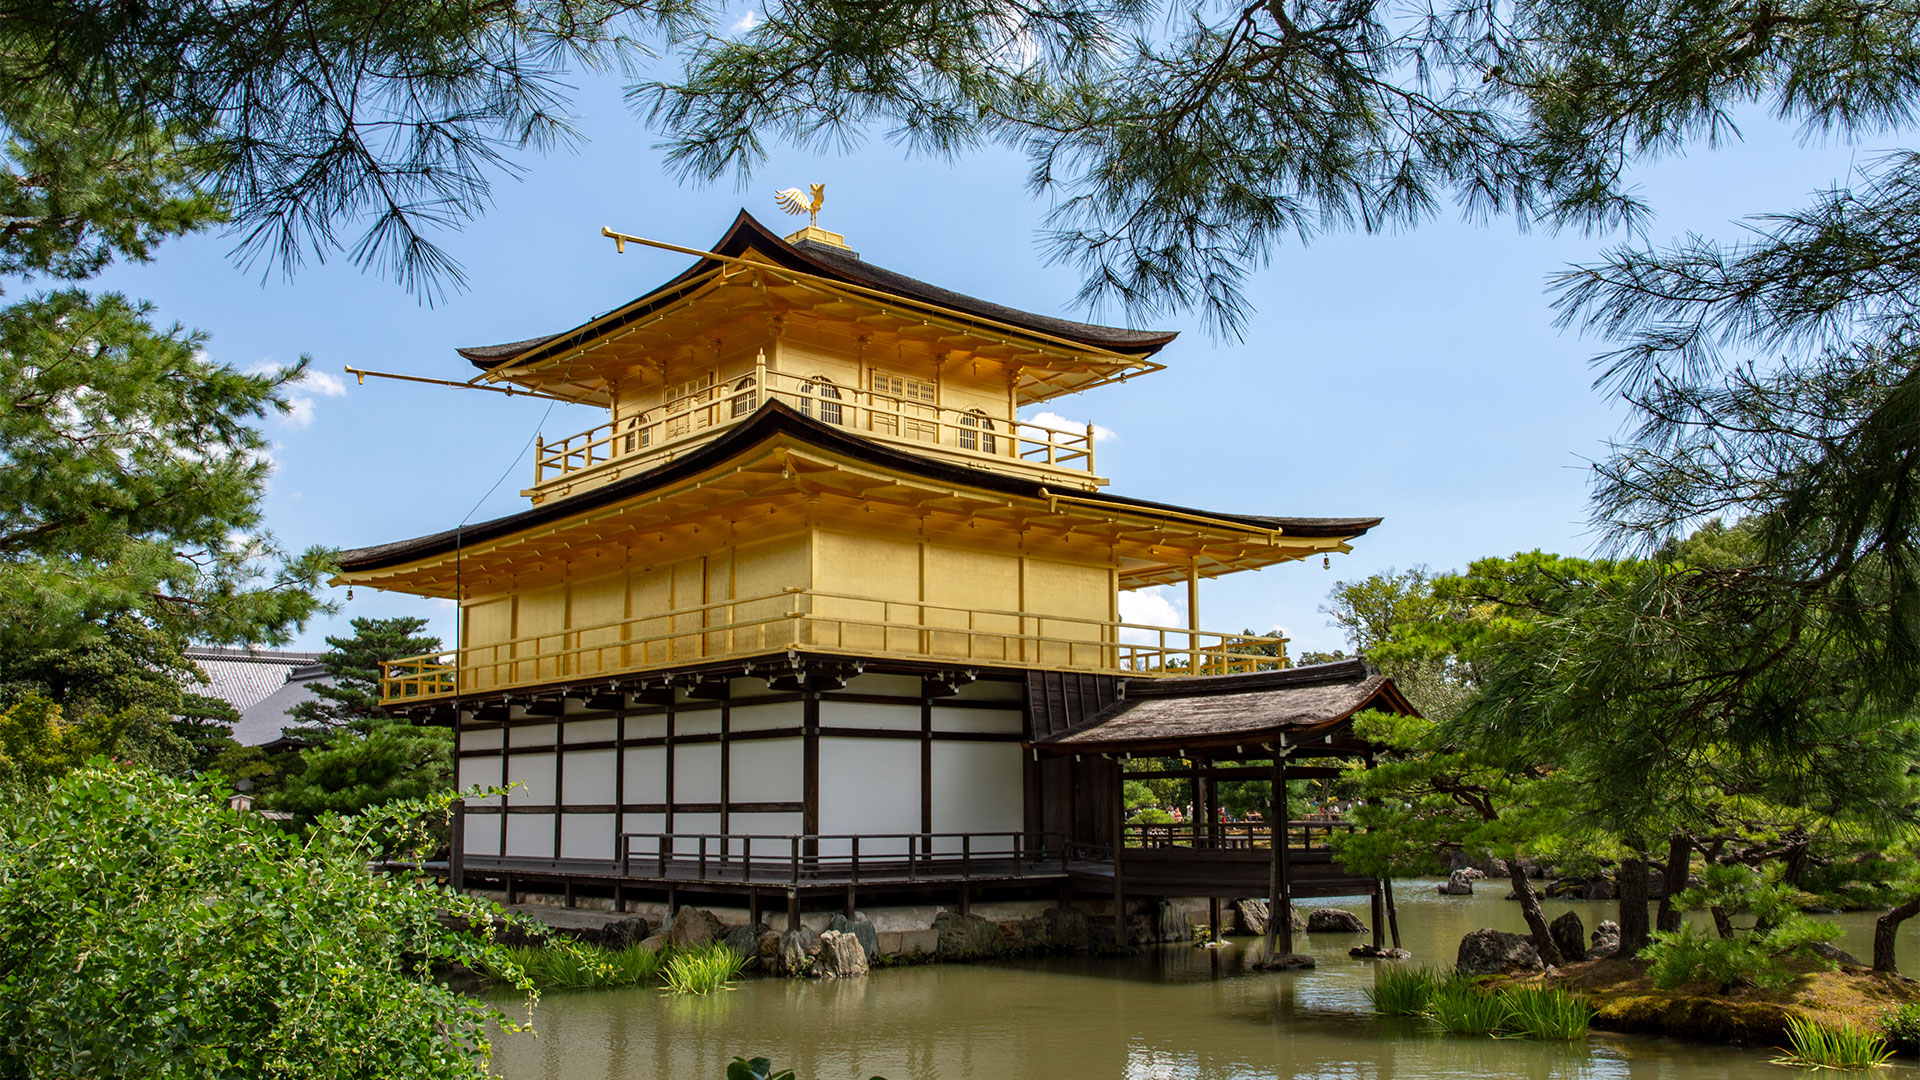 Kinkaku-ji (The Golden Pavilion) Kyoto